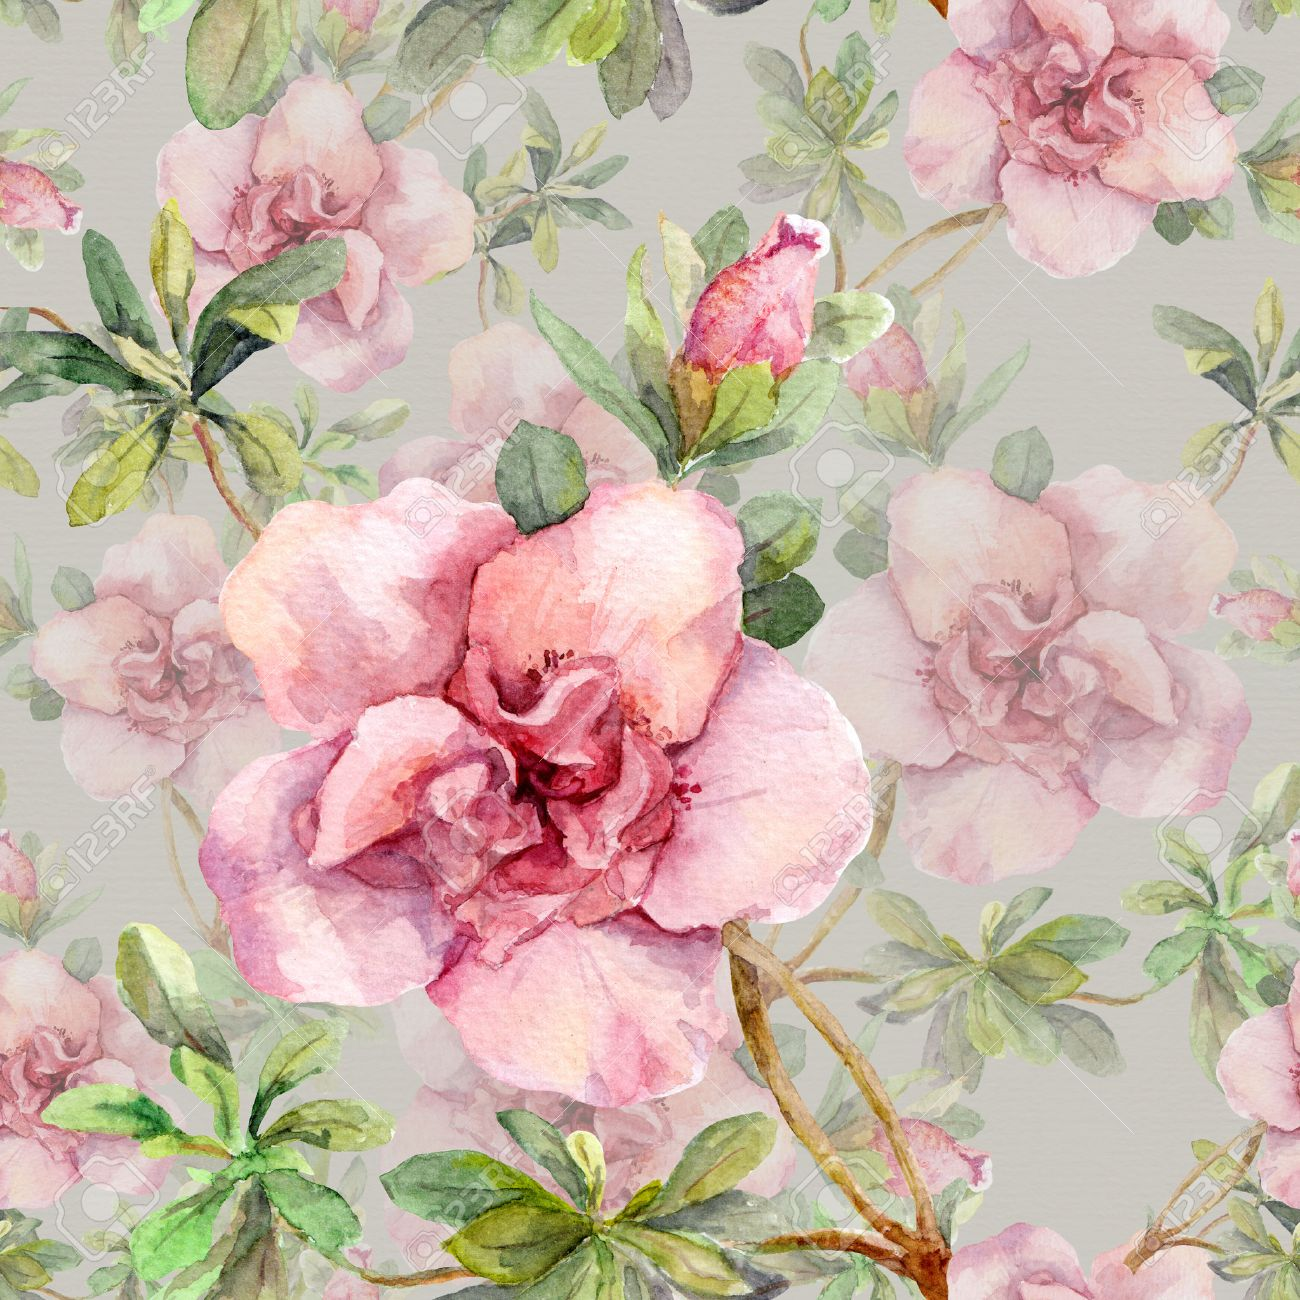 Blooming pink flowers seamless vintage floral pattern watercolor blooming pink flowers seamless vintage floral pattern watercolor retro design and natural background stock mightylinksfo